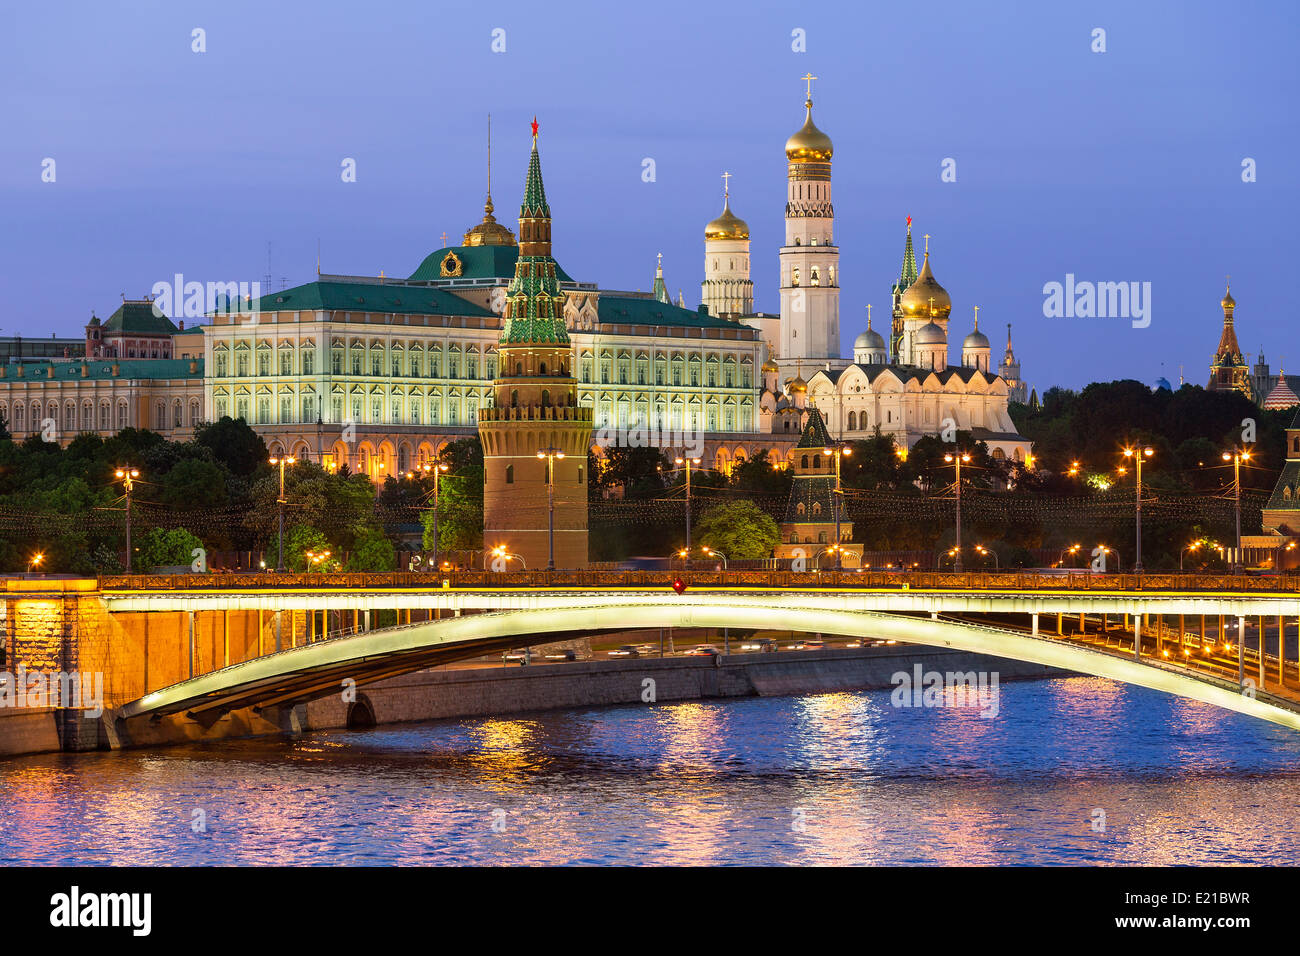 Moscow, Kremlin and Moscva River by night - Stock Image